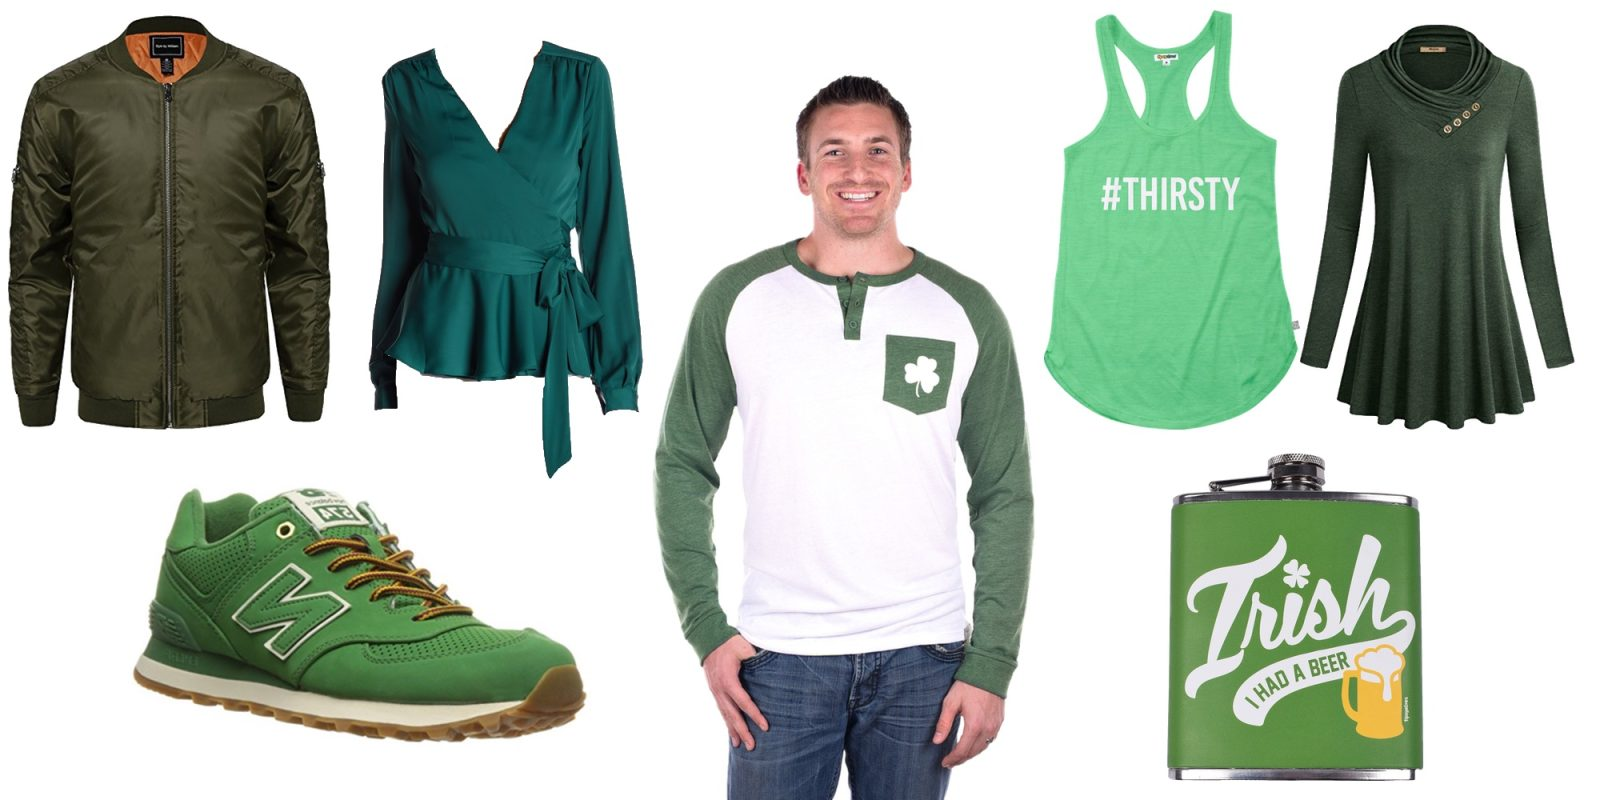 Look Good And Be Ready For St Patricks Day With These Outfit